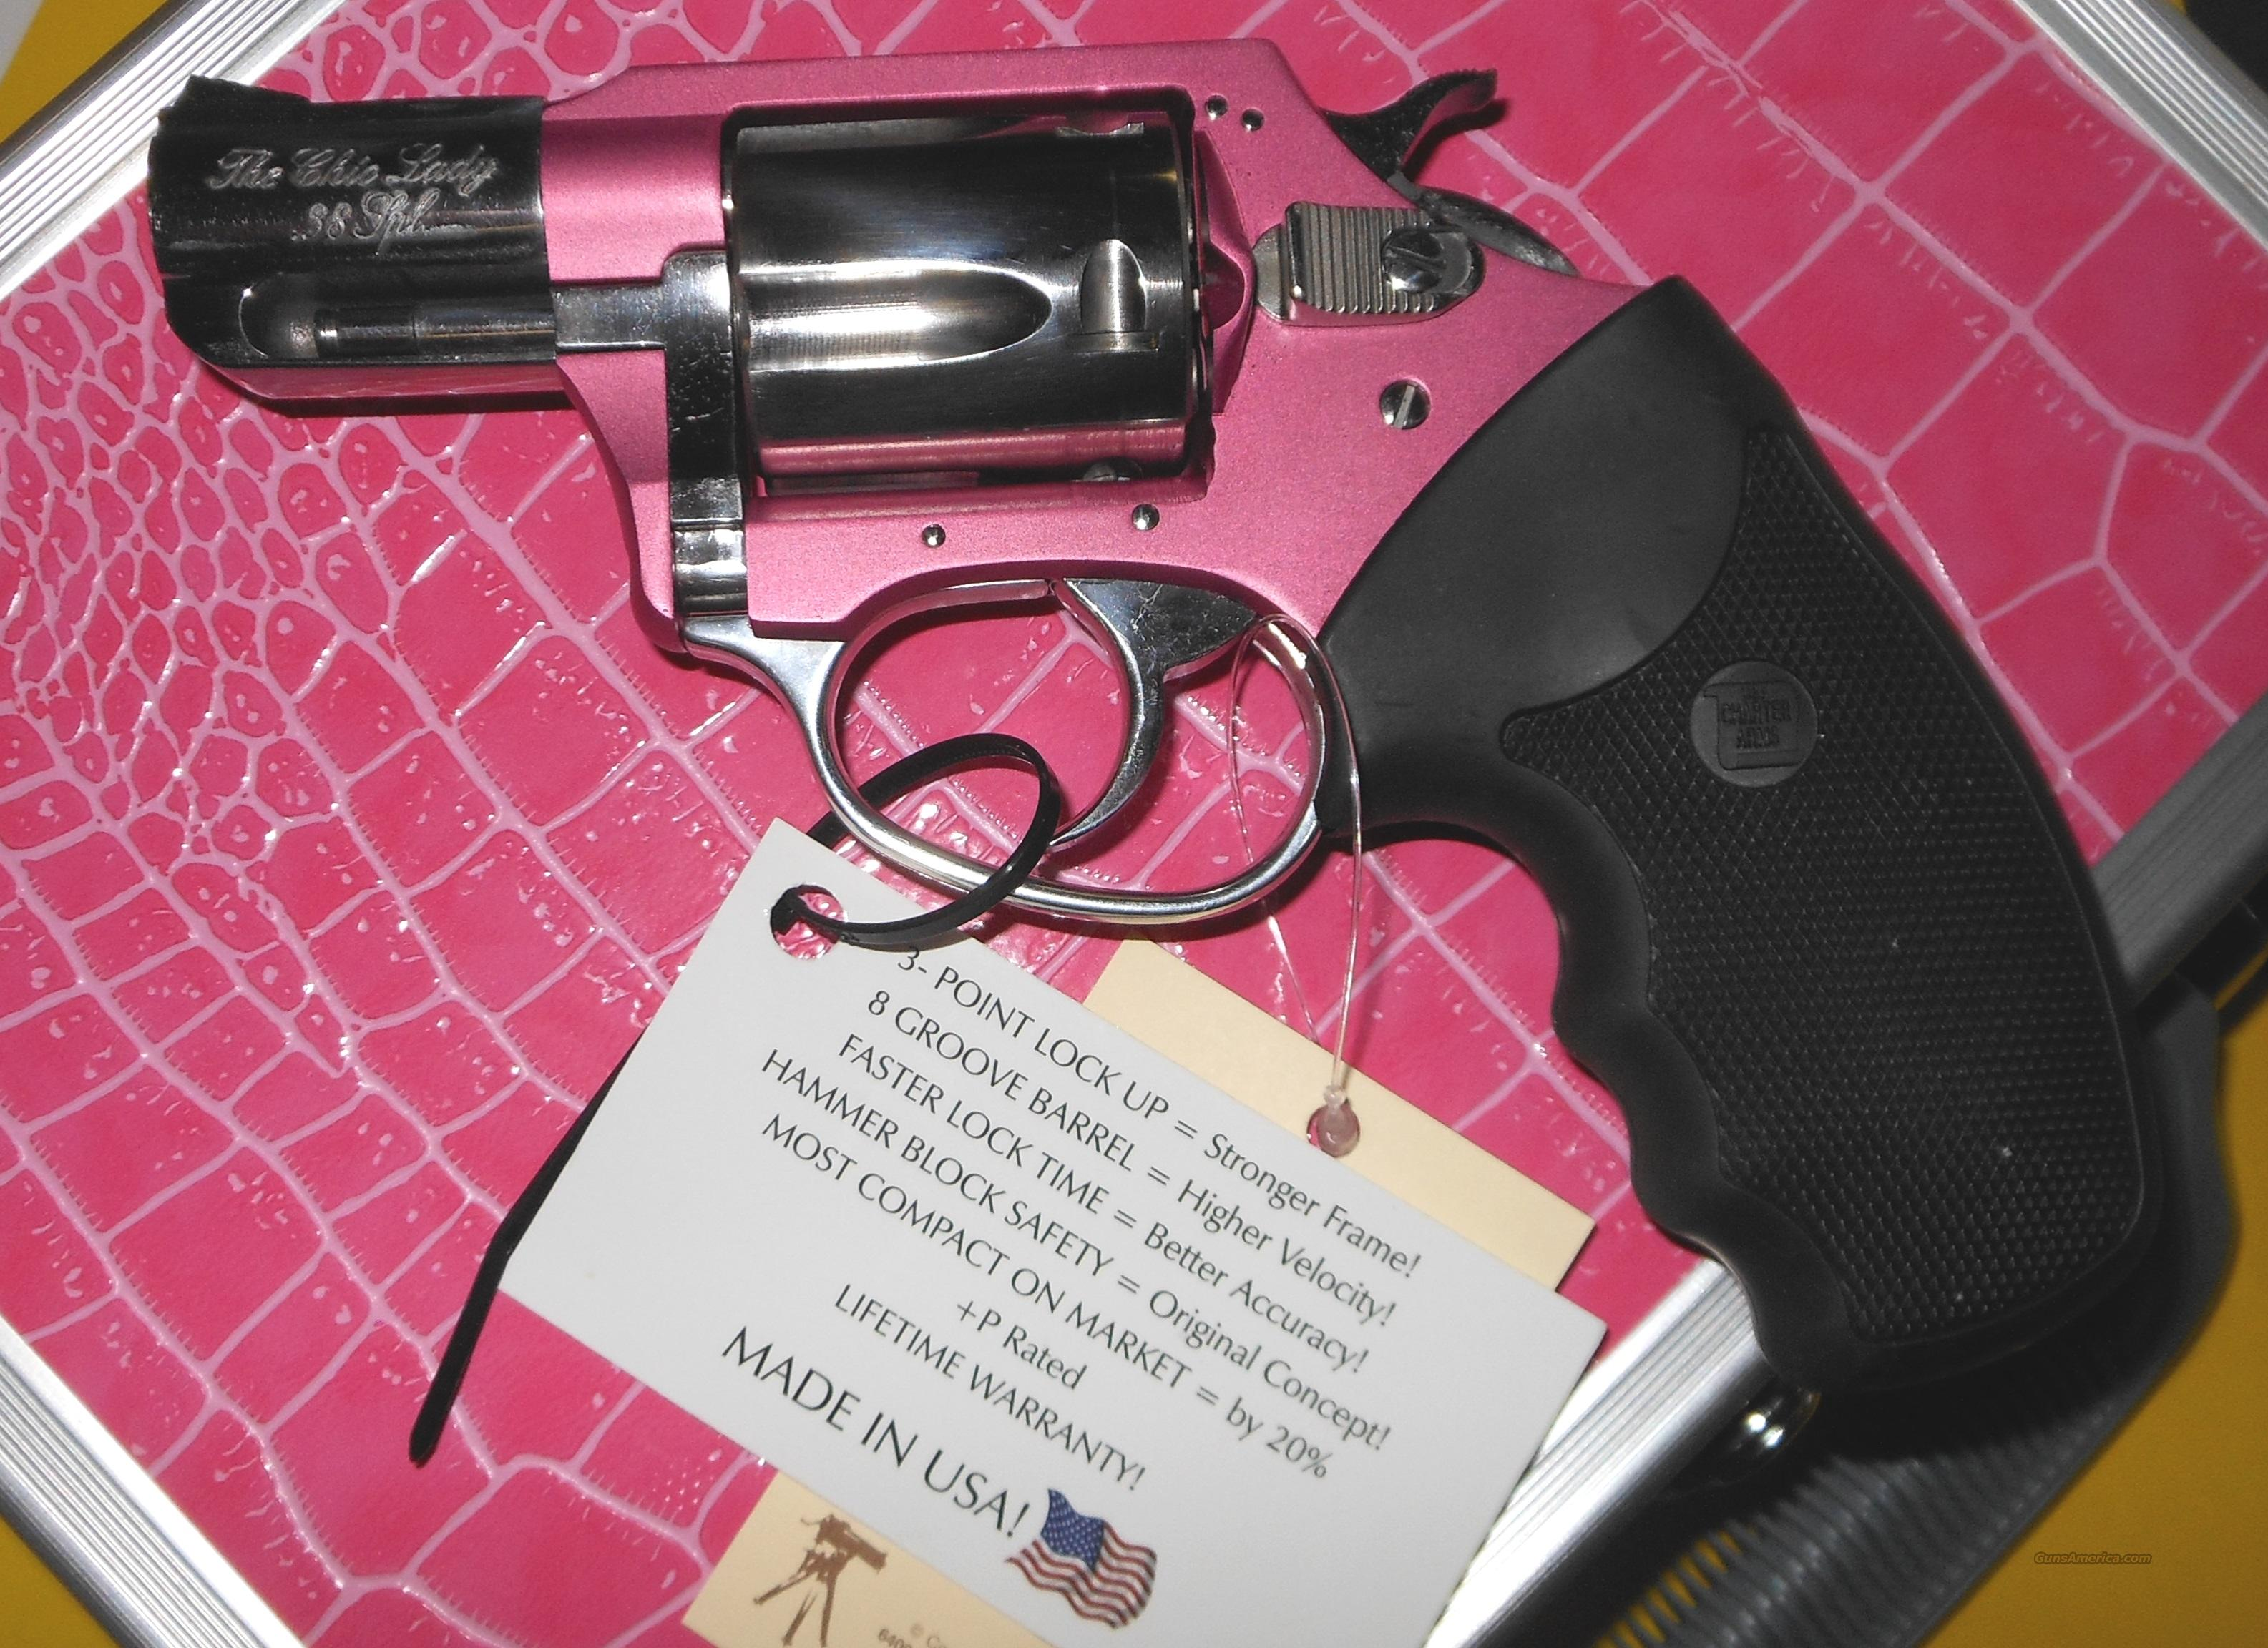 CHARTER ARMS CHIC LADY 38SPC REVOLVER W/ PINK CASE  Guns > Pistols > Charter Arms Revolvers